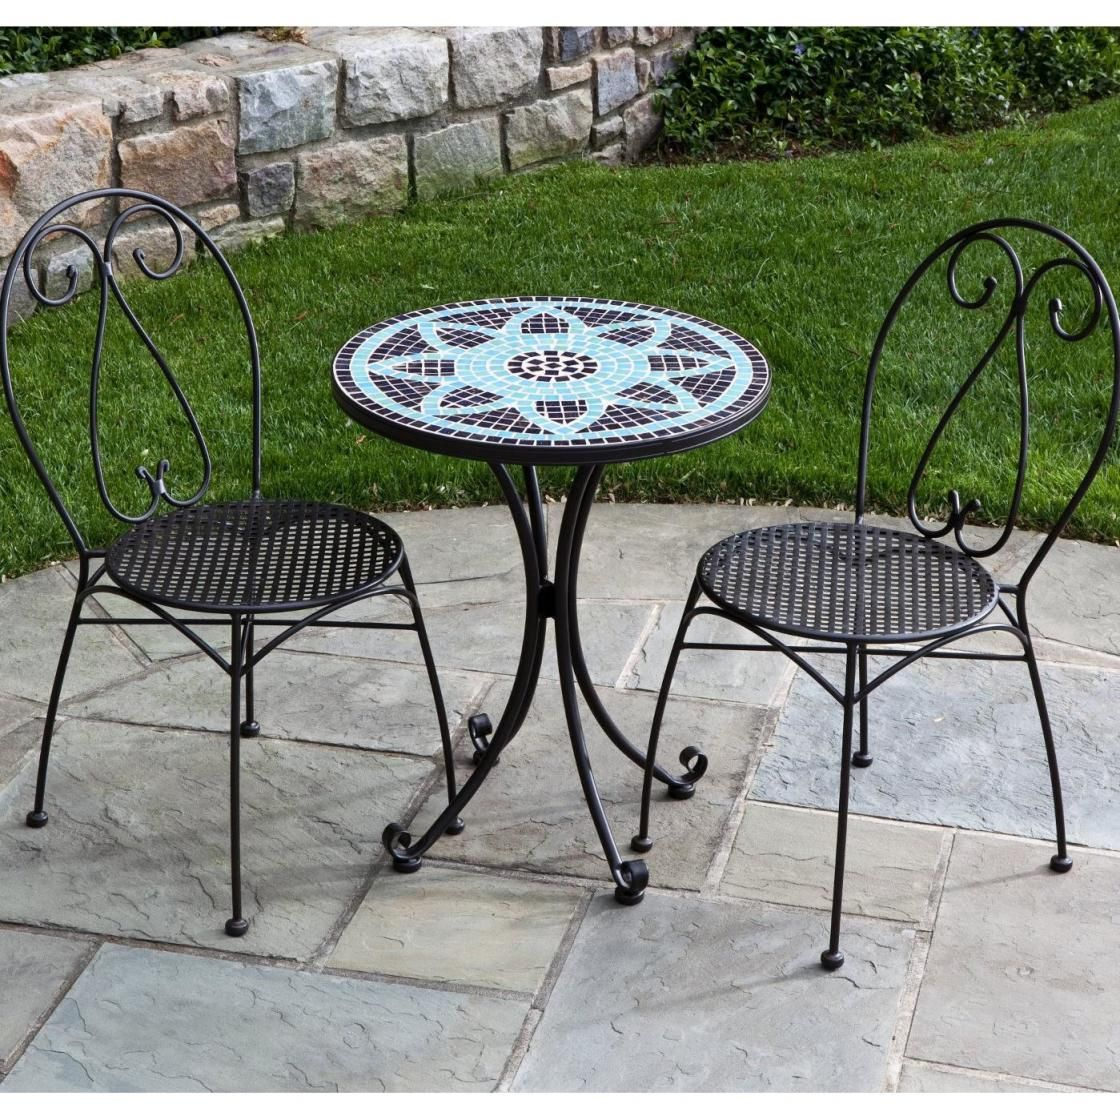 Appealing outdoor patio furniture ideas featuring trendy for Patio table set